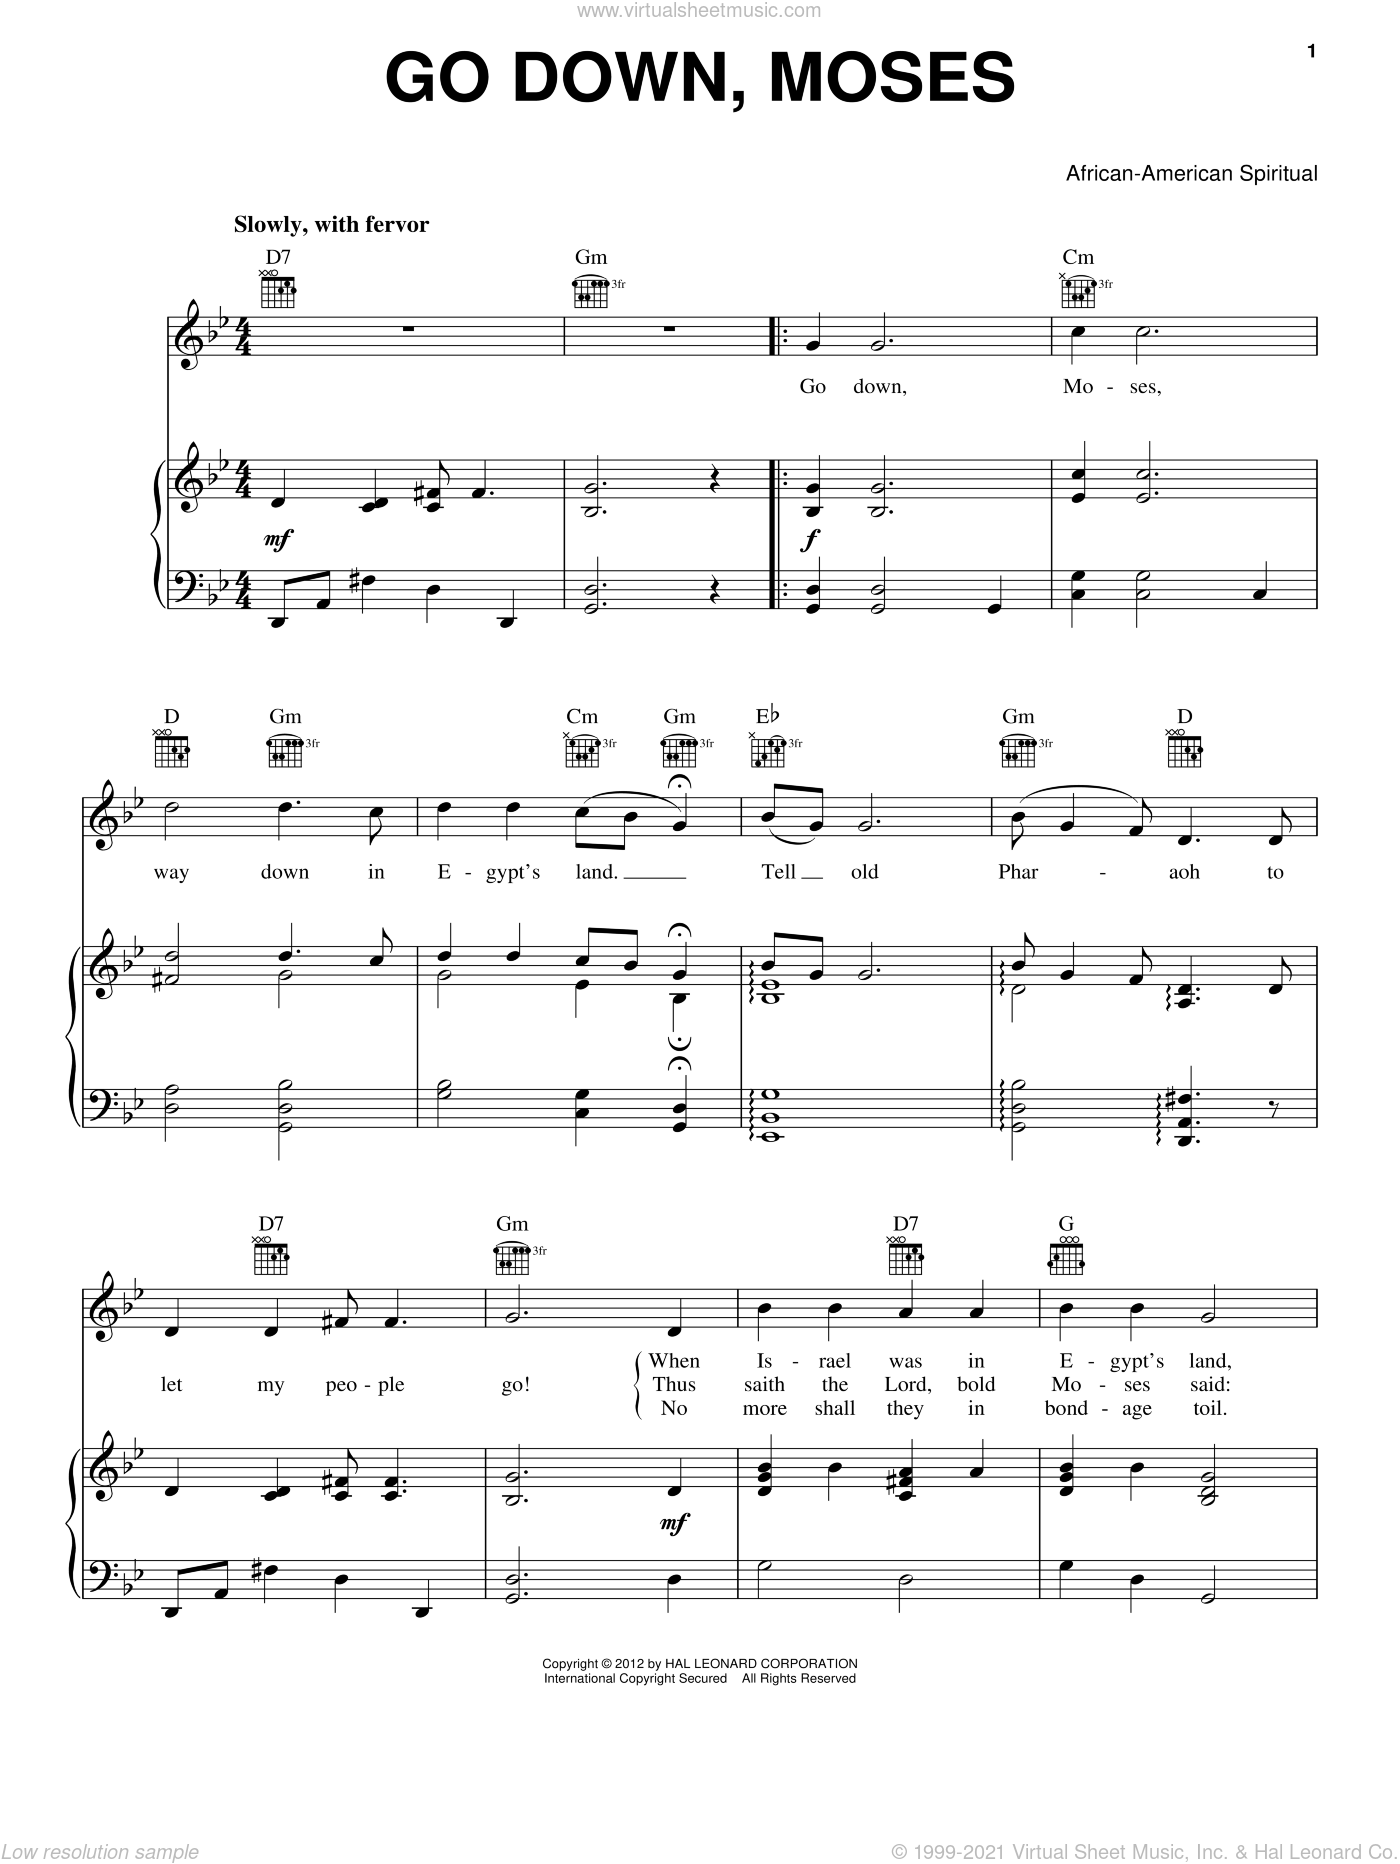 Go Down Moses sheet music for voice, piano or guitar, intermediate skill level